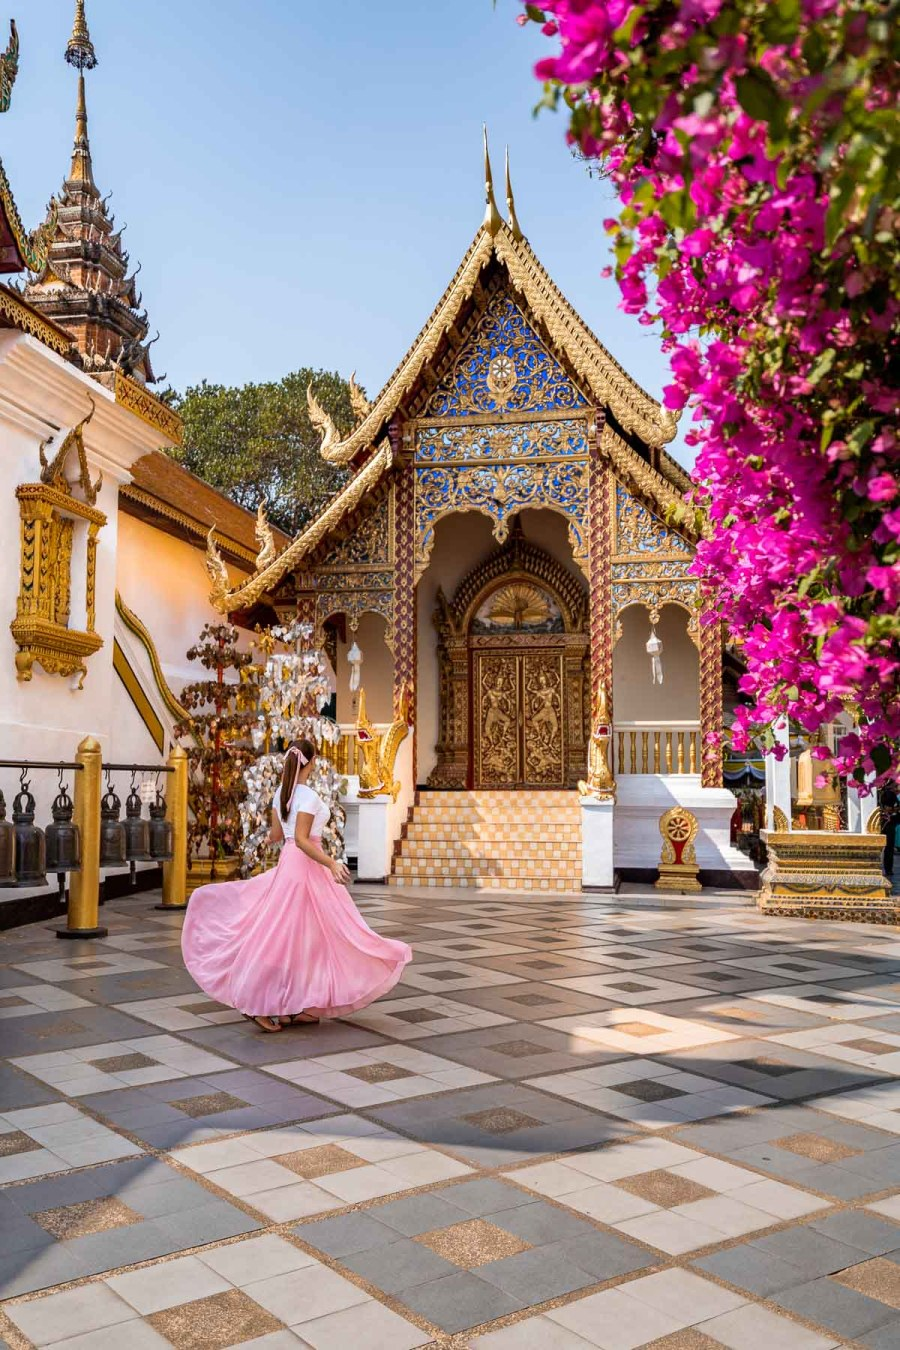 Girl in a pink skirt twirling in front of a beautiful temple in Doi Suthep, Chiang Mai